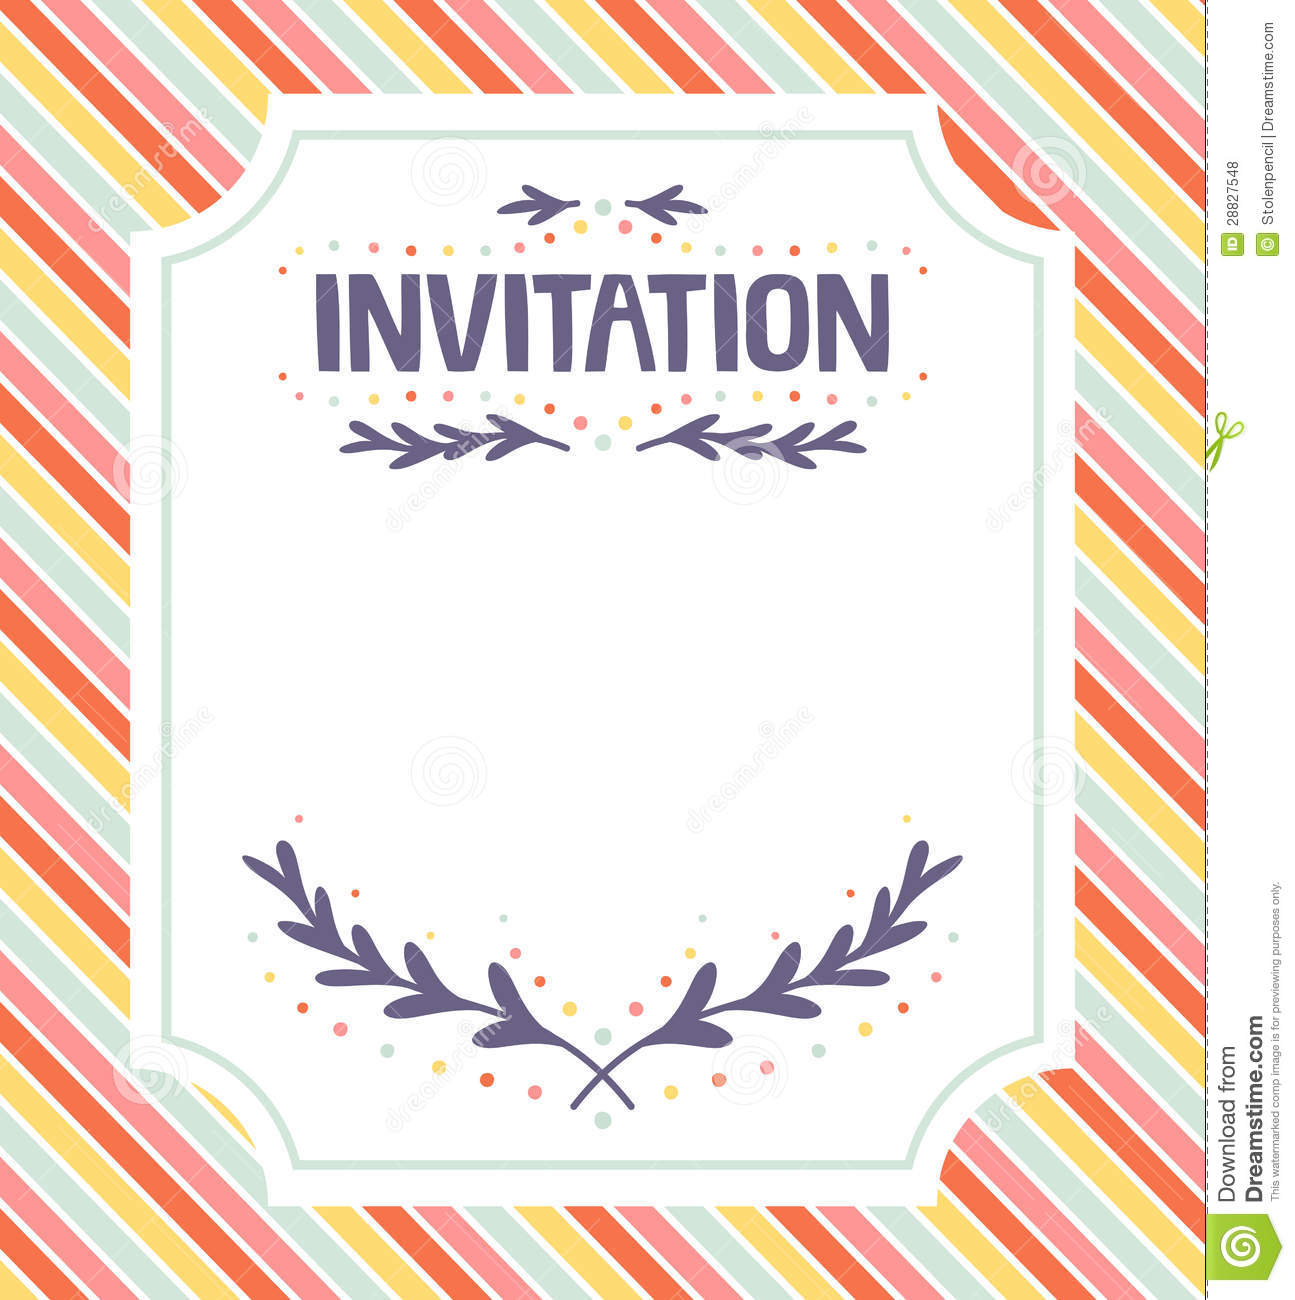 Invitation Template  Invatation Template